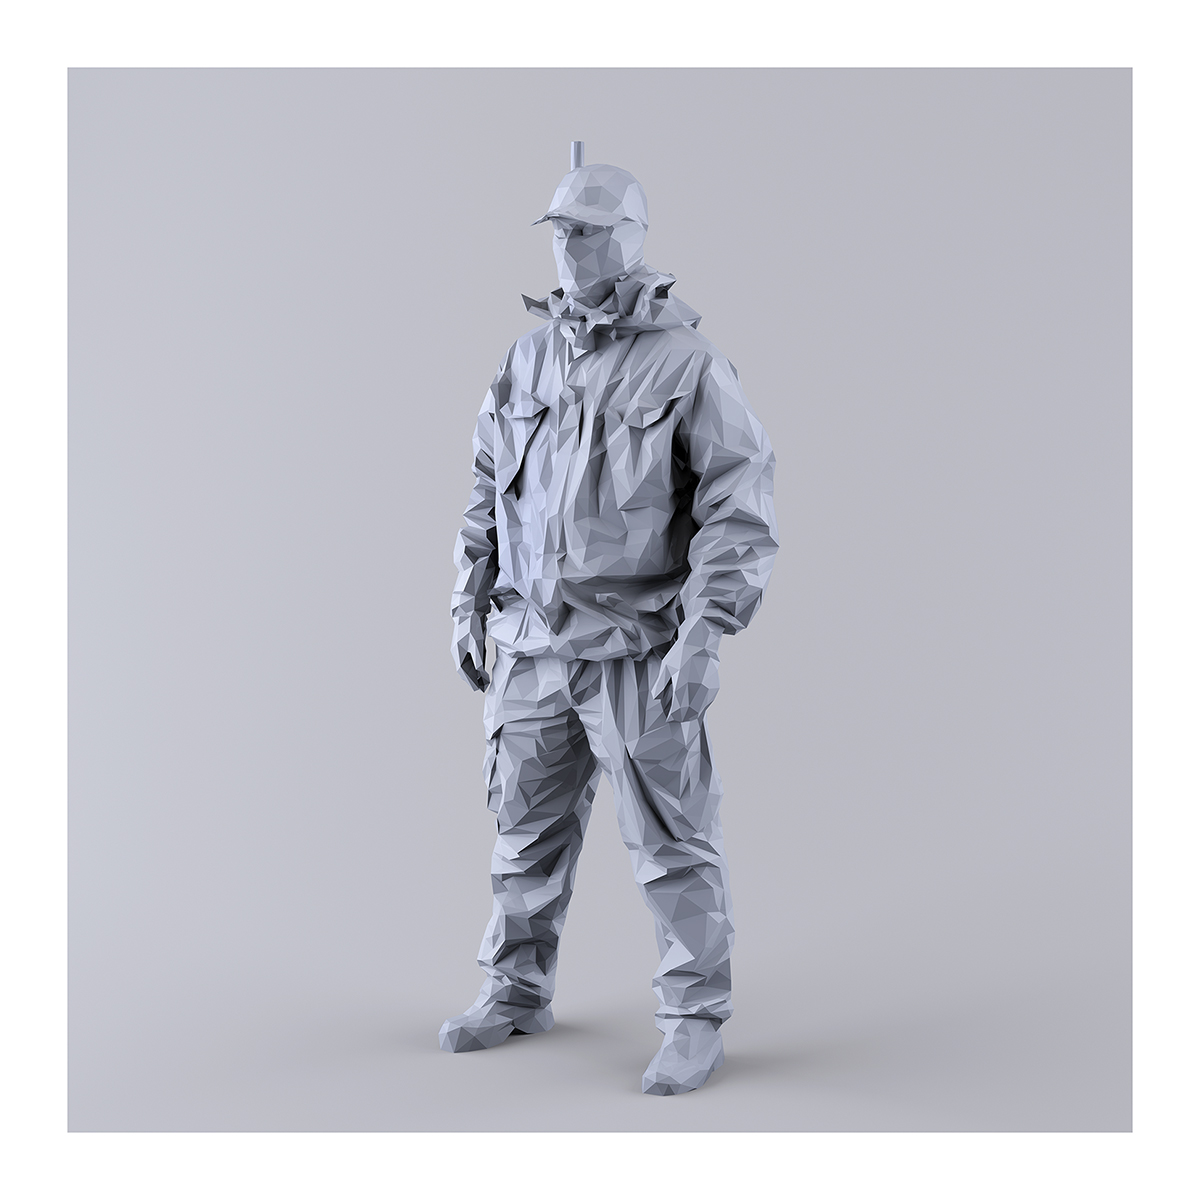 This was HomoSapiens I MM 006 1 - 2019 - This was HomoSapiens. I. (LowPoly Military Men)